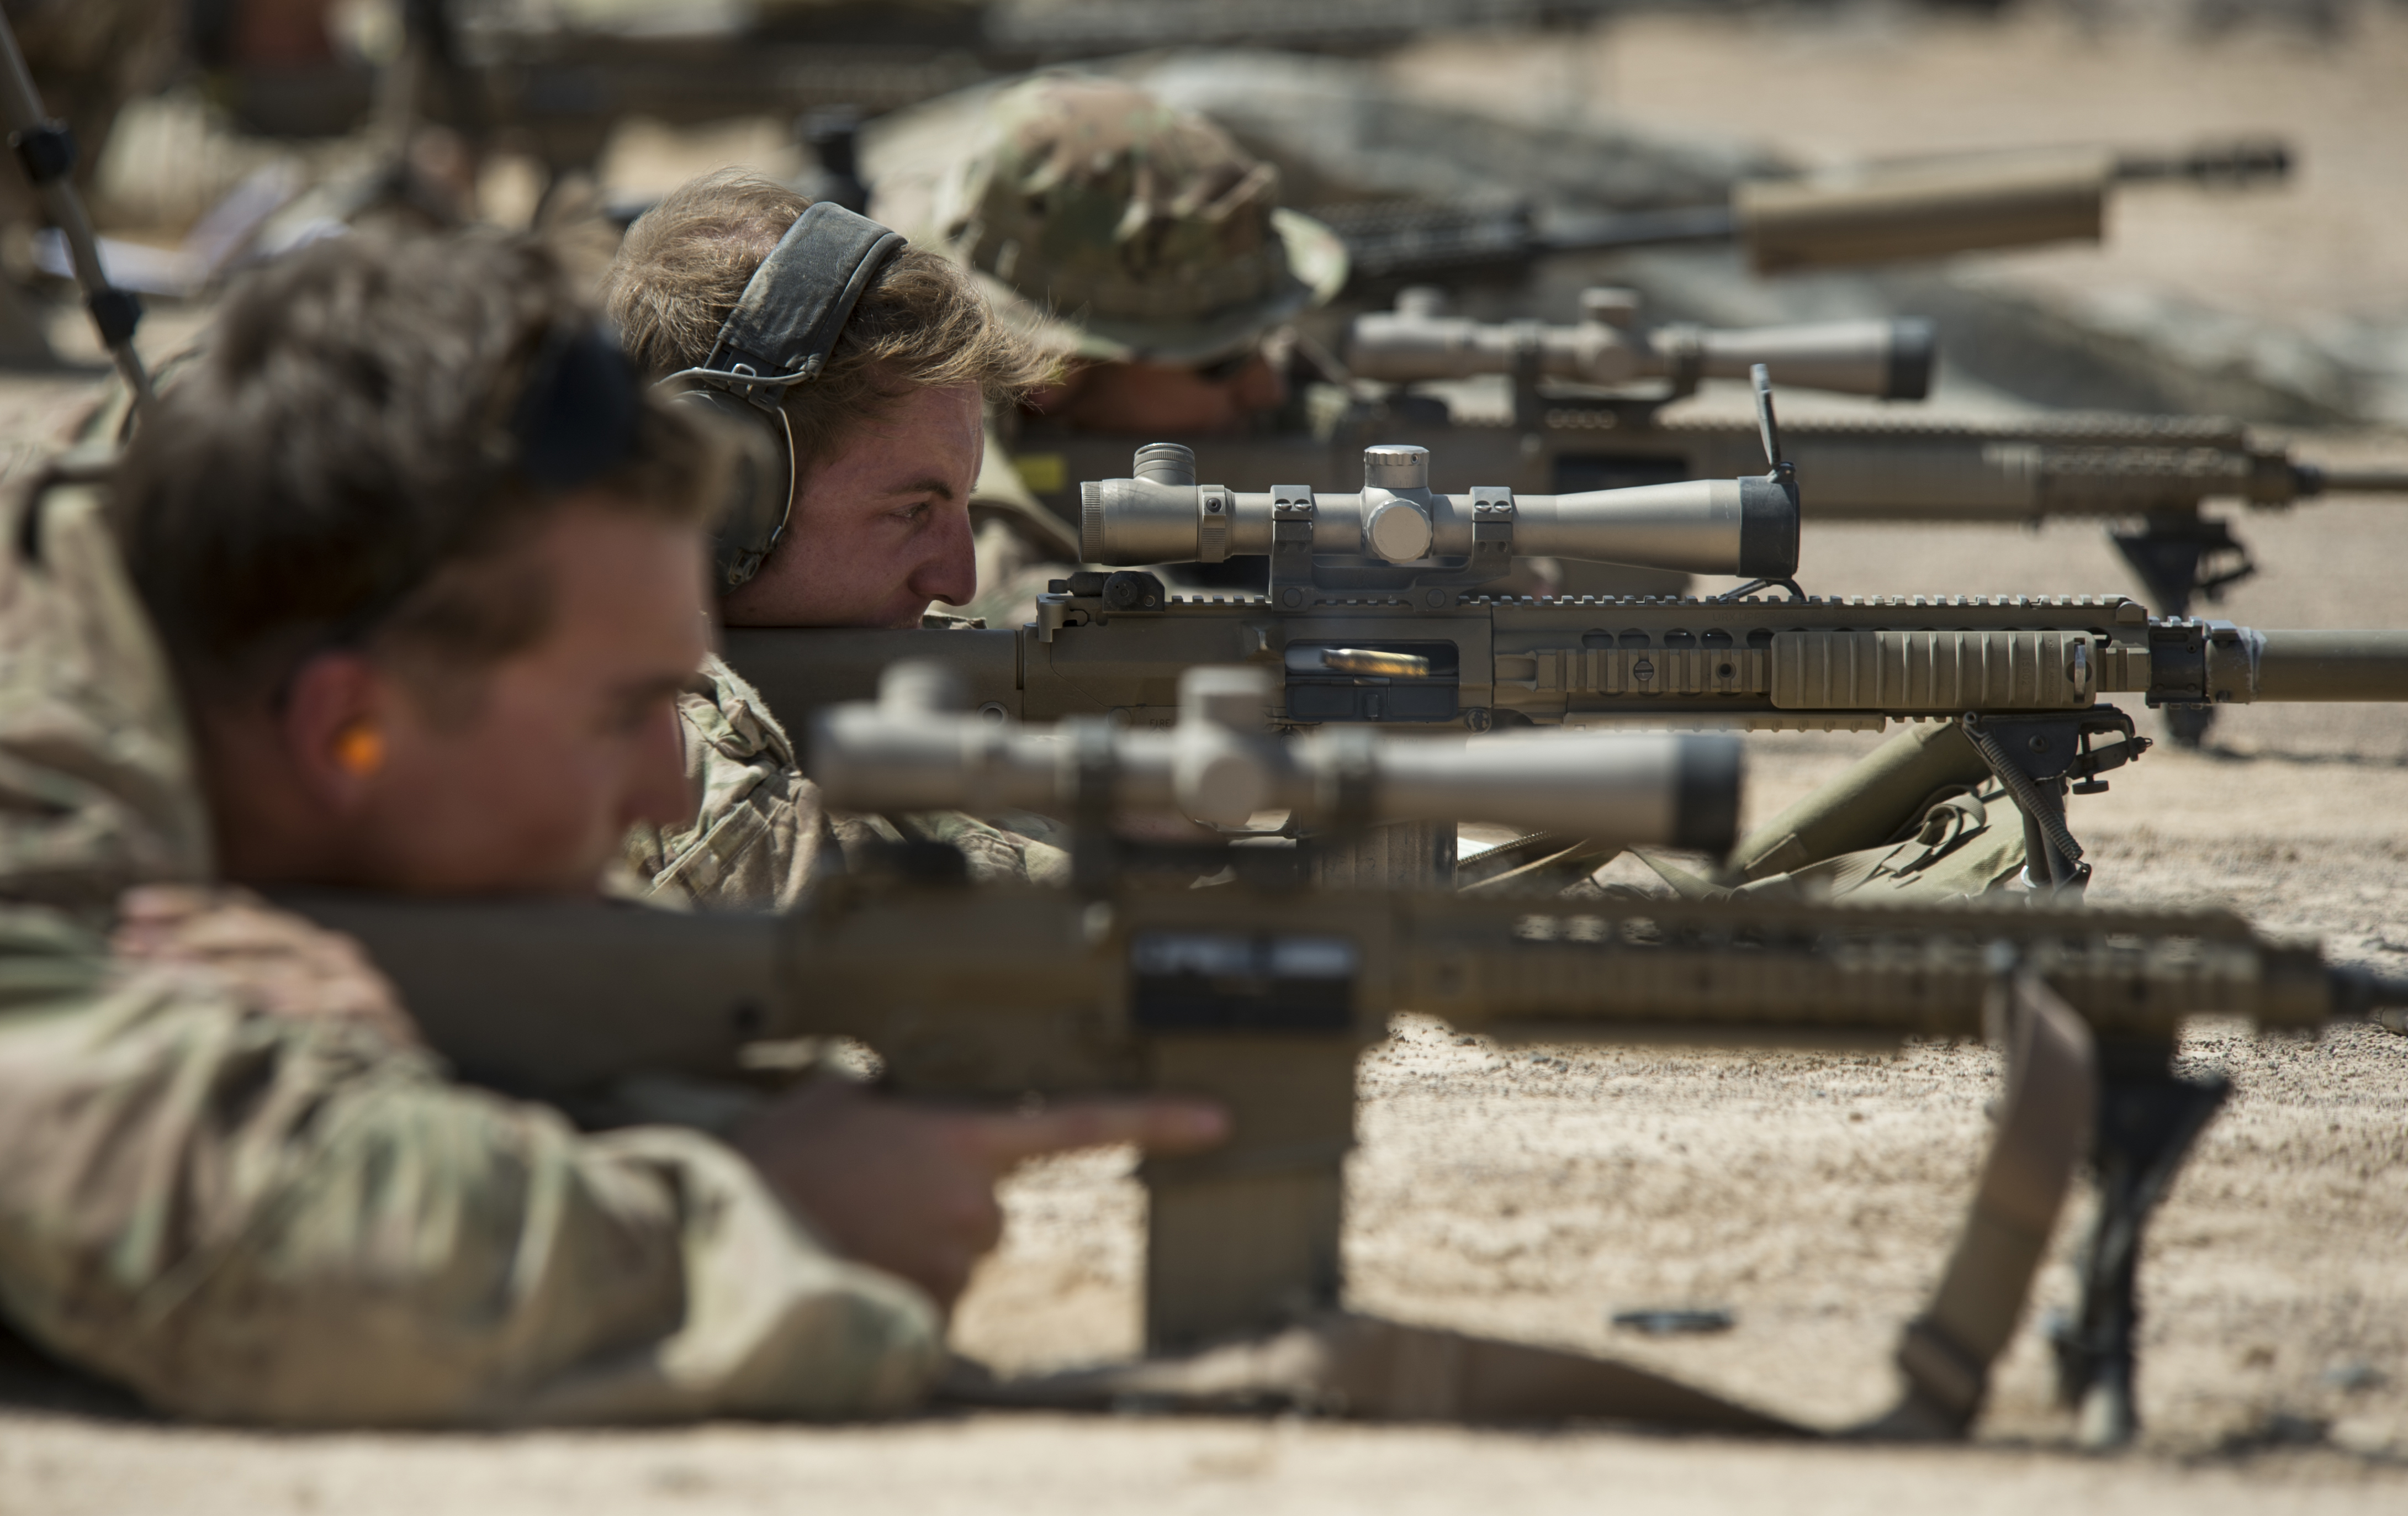 U.S. Army Alpha Company, 3rd Battalion, 15th Infantry Regiment, scout snipers fire M110 sniper rifles on October 14, 2015, in Djibouti. (Senior Airman Peter Thompson/U.S. Air Force)